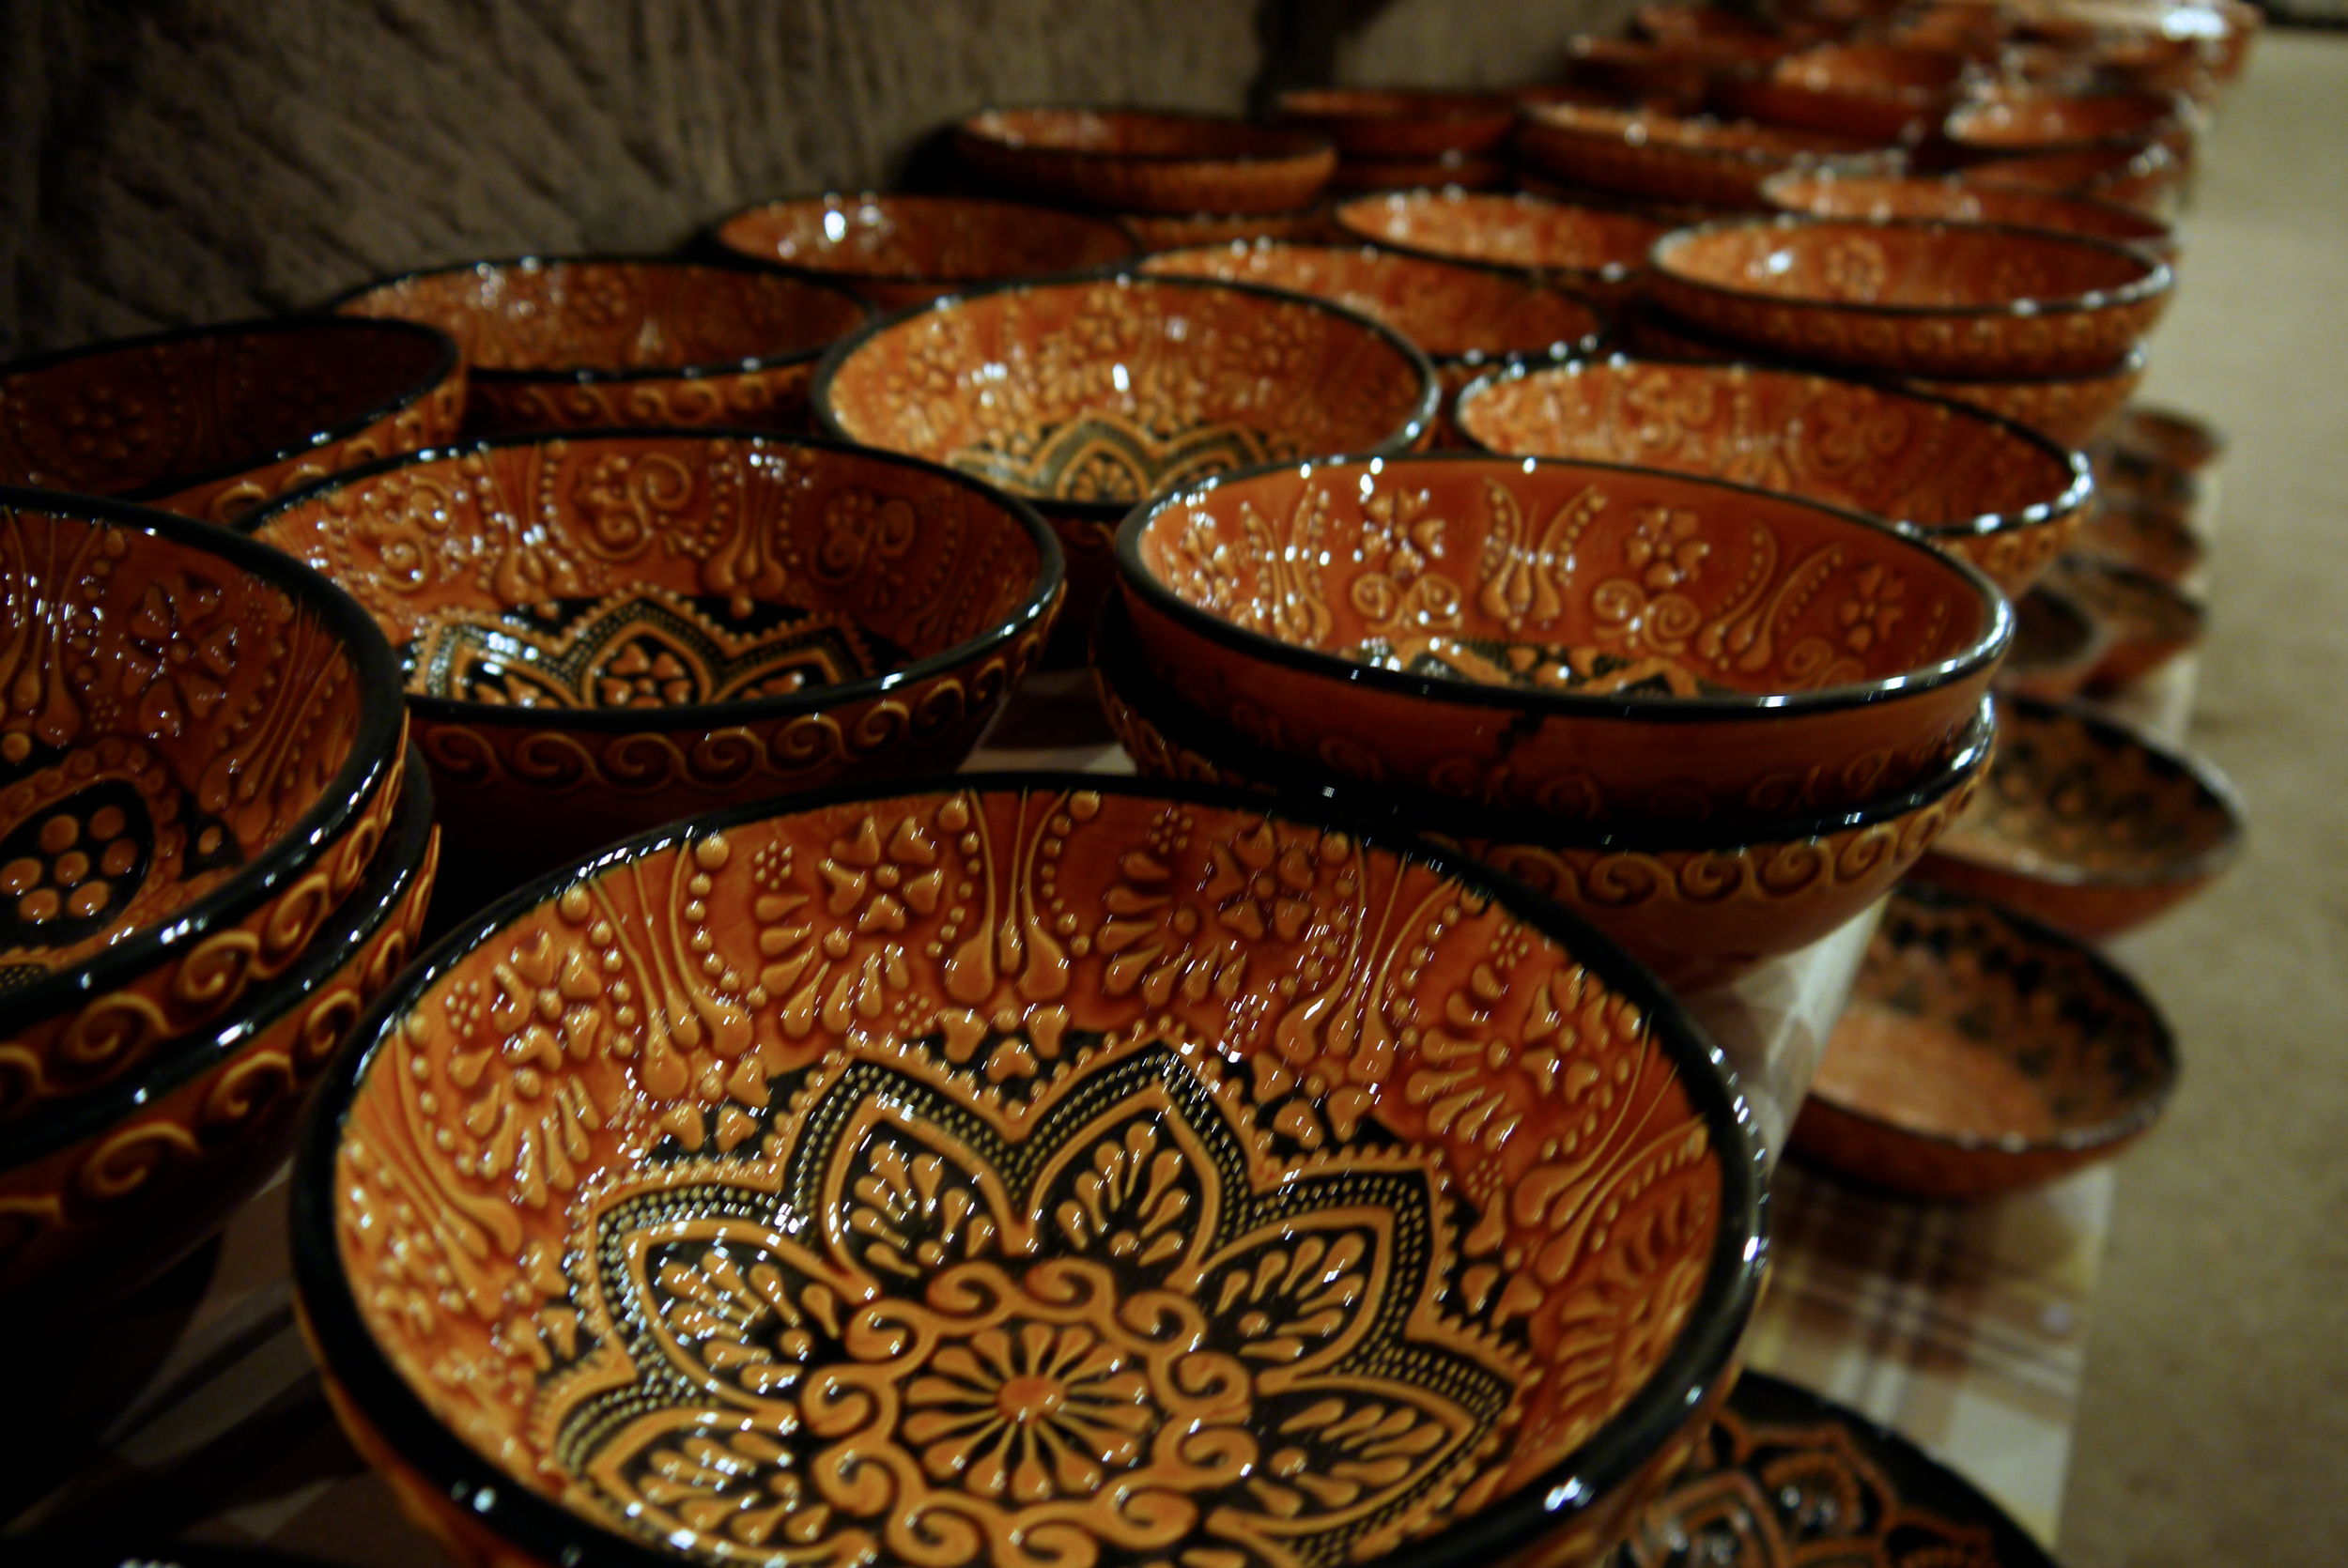 Figure 6a. Affordable ceramic bowls